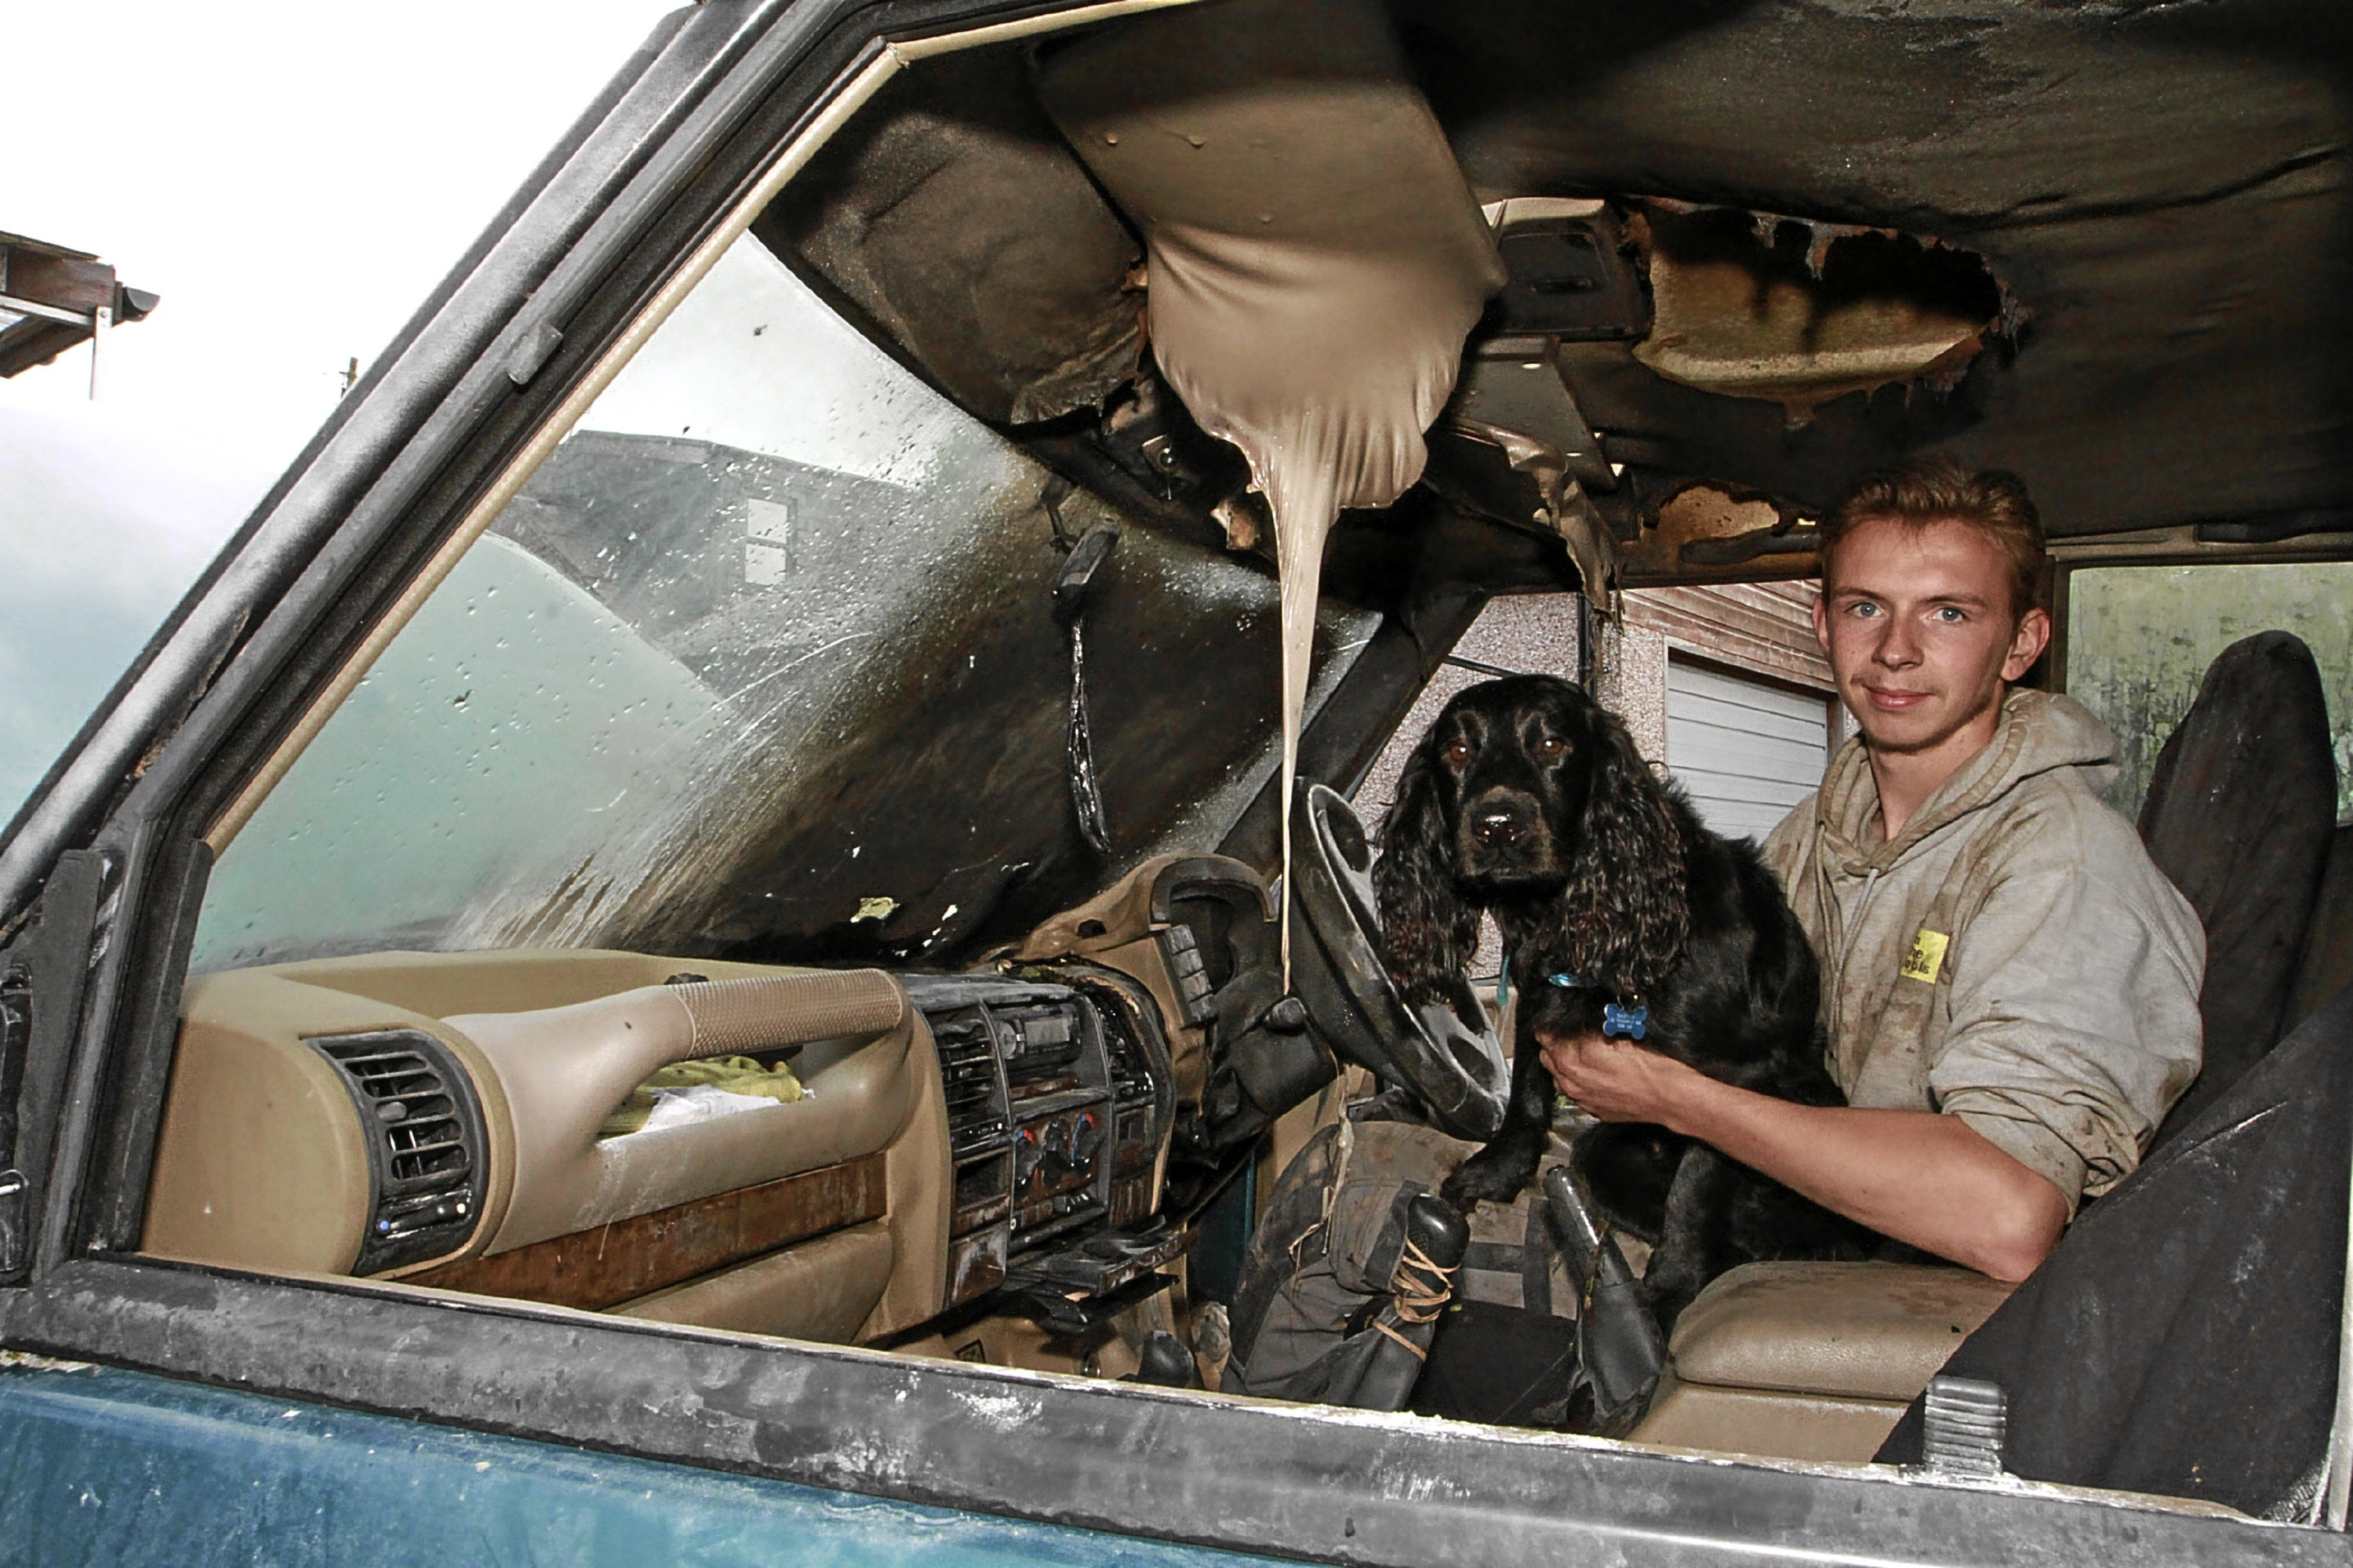 Scott Baxter and his dog Orlo in the burnt out car